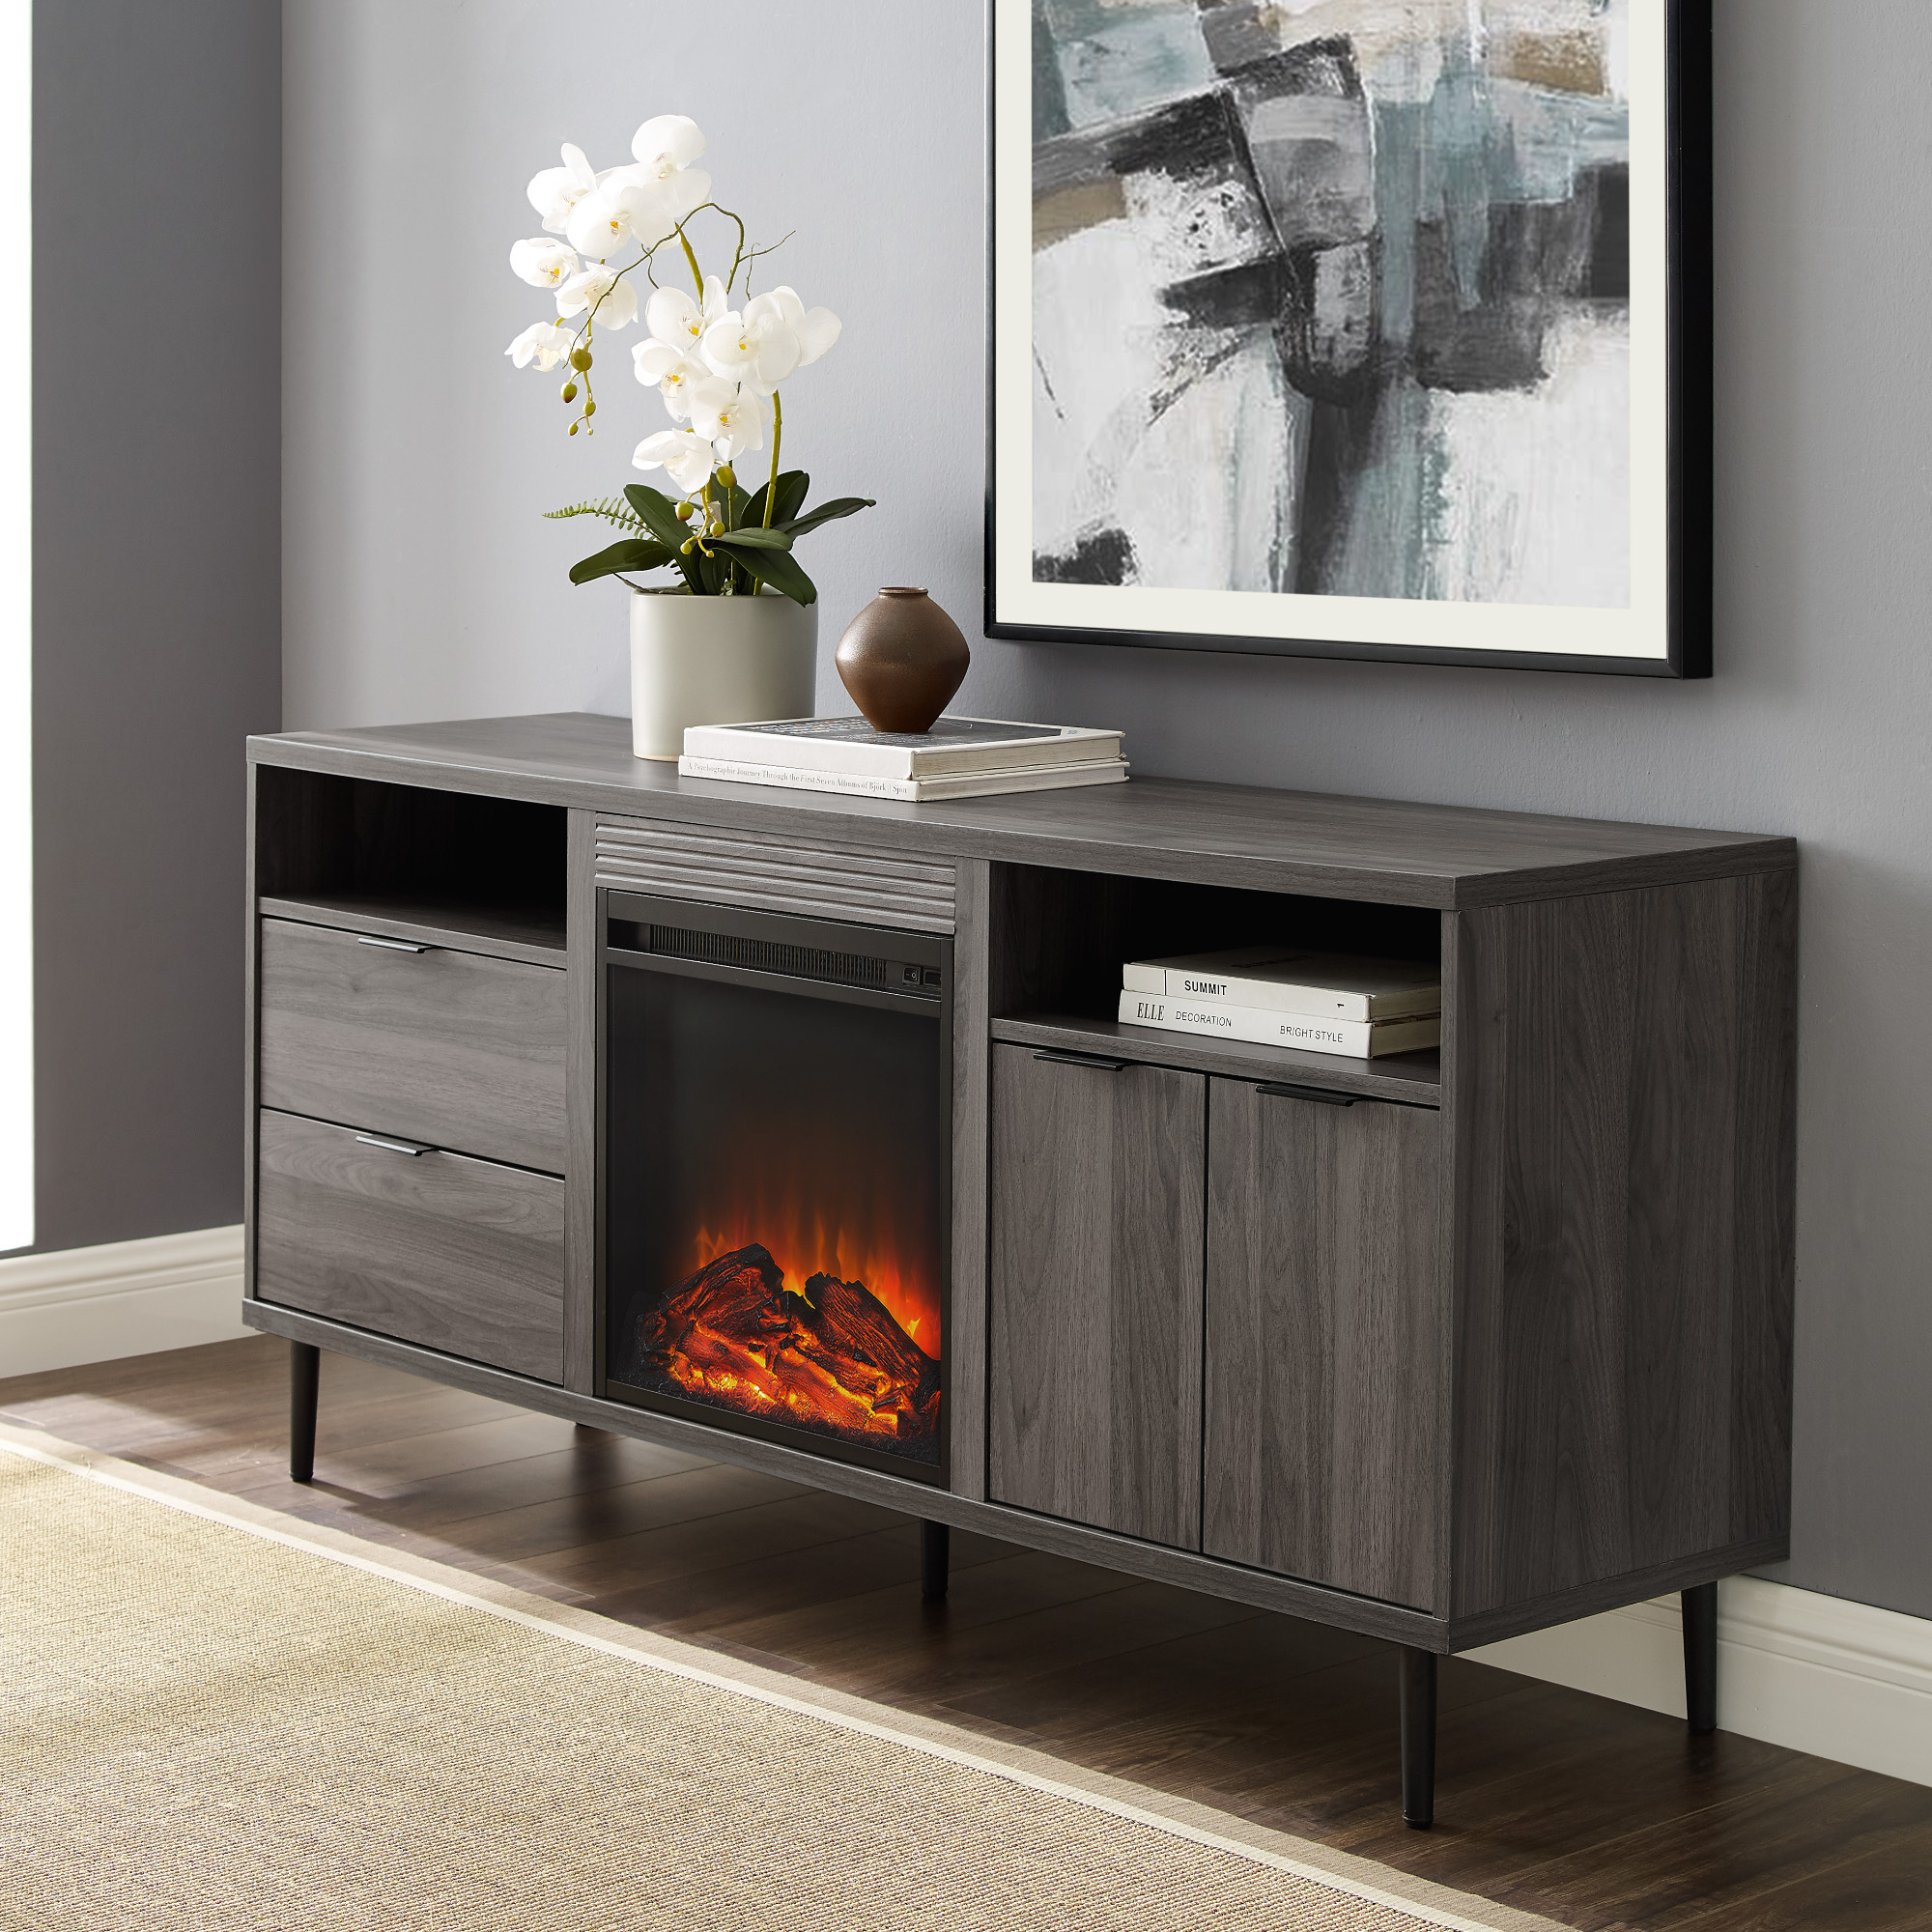 Manor Park Modern Fireplace Tv Stand For Tvs Up To 66 Inside Baby Proof Contemporary Tv Cabinets (View 3 of 15)